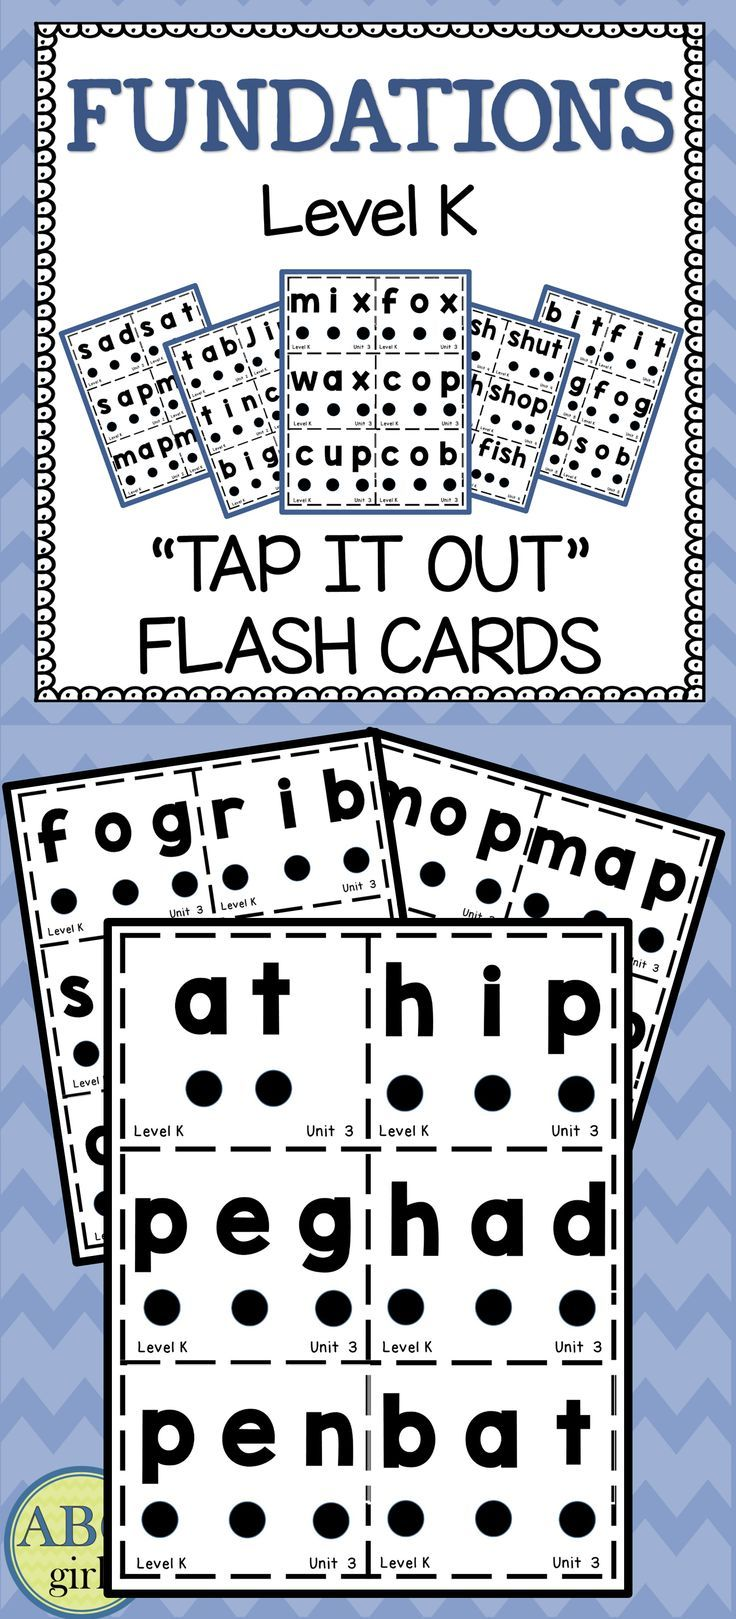 Worksheets Wilson Reading Worksheets kindergarten fundationally fun phonics level k tap it out flash cards wilson readingearly